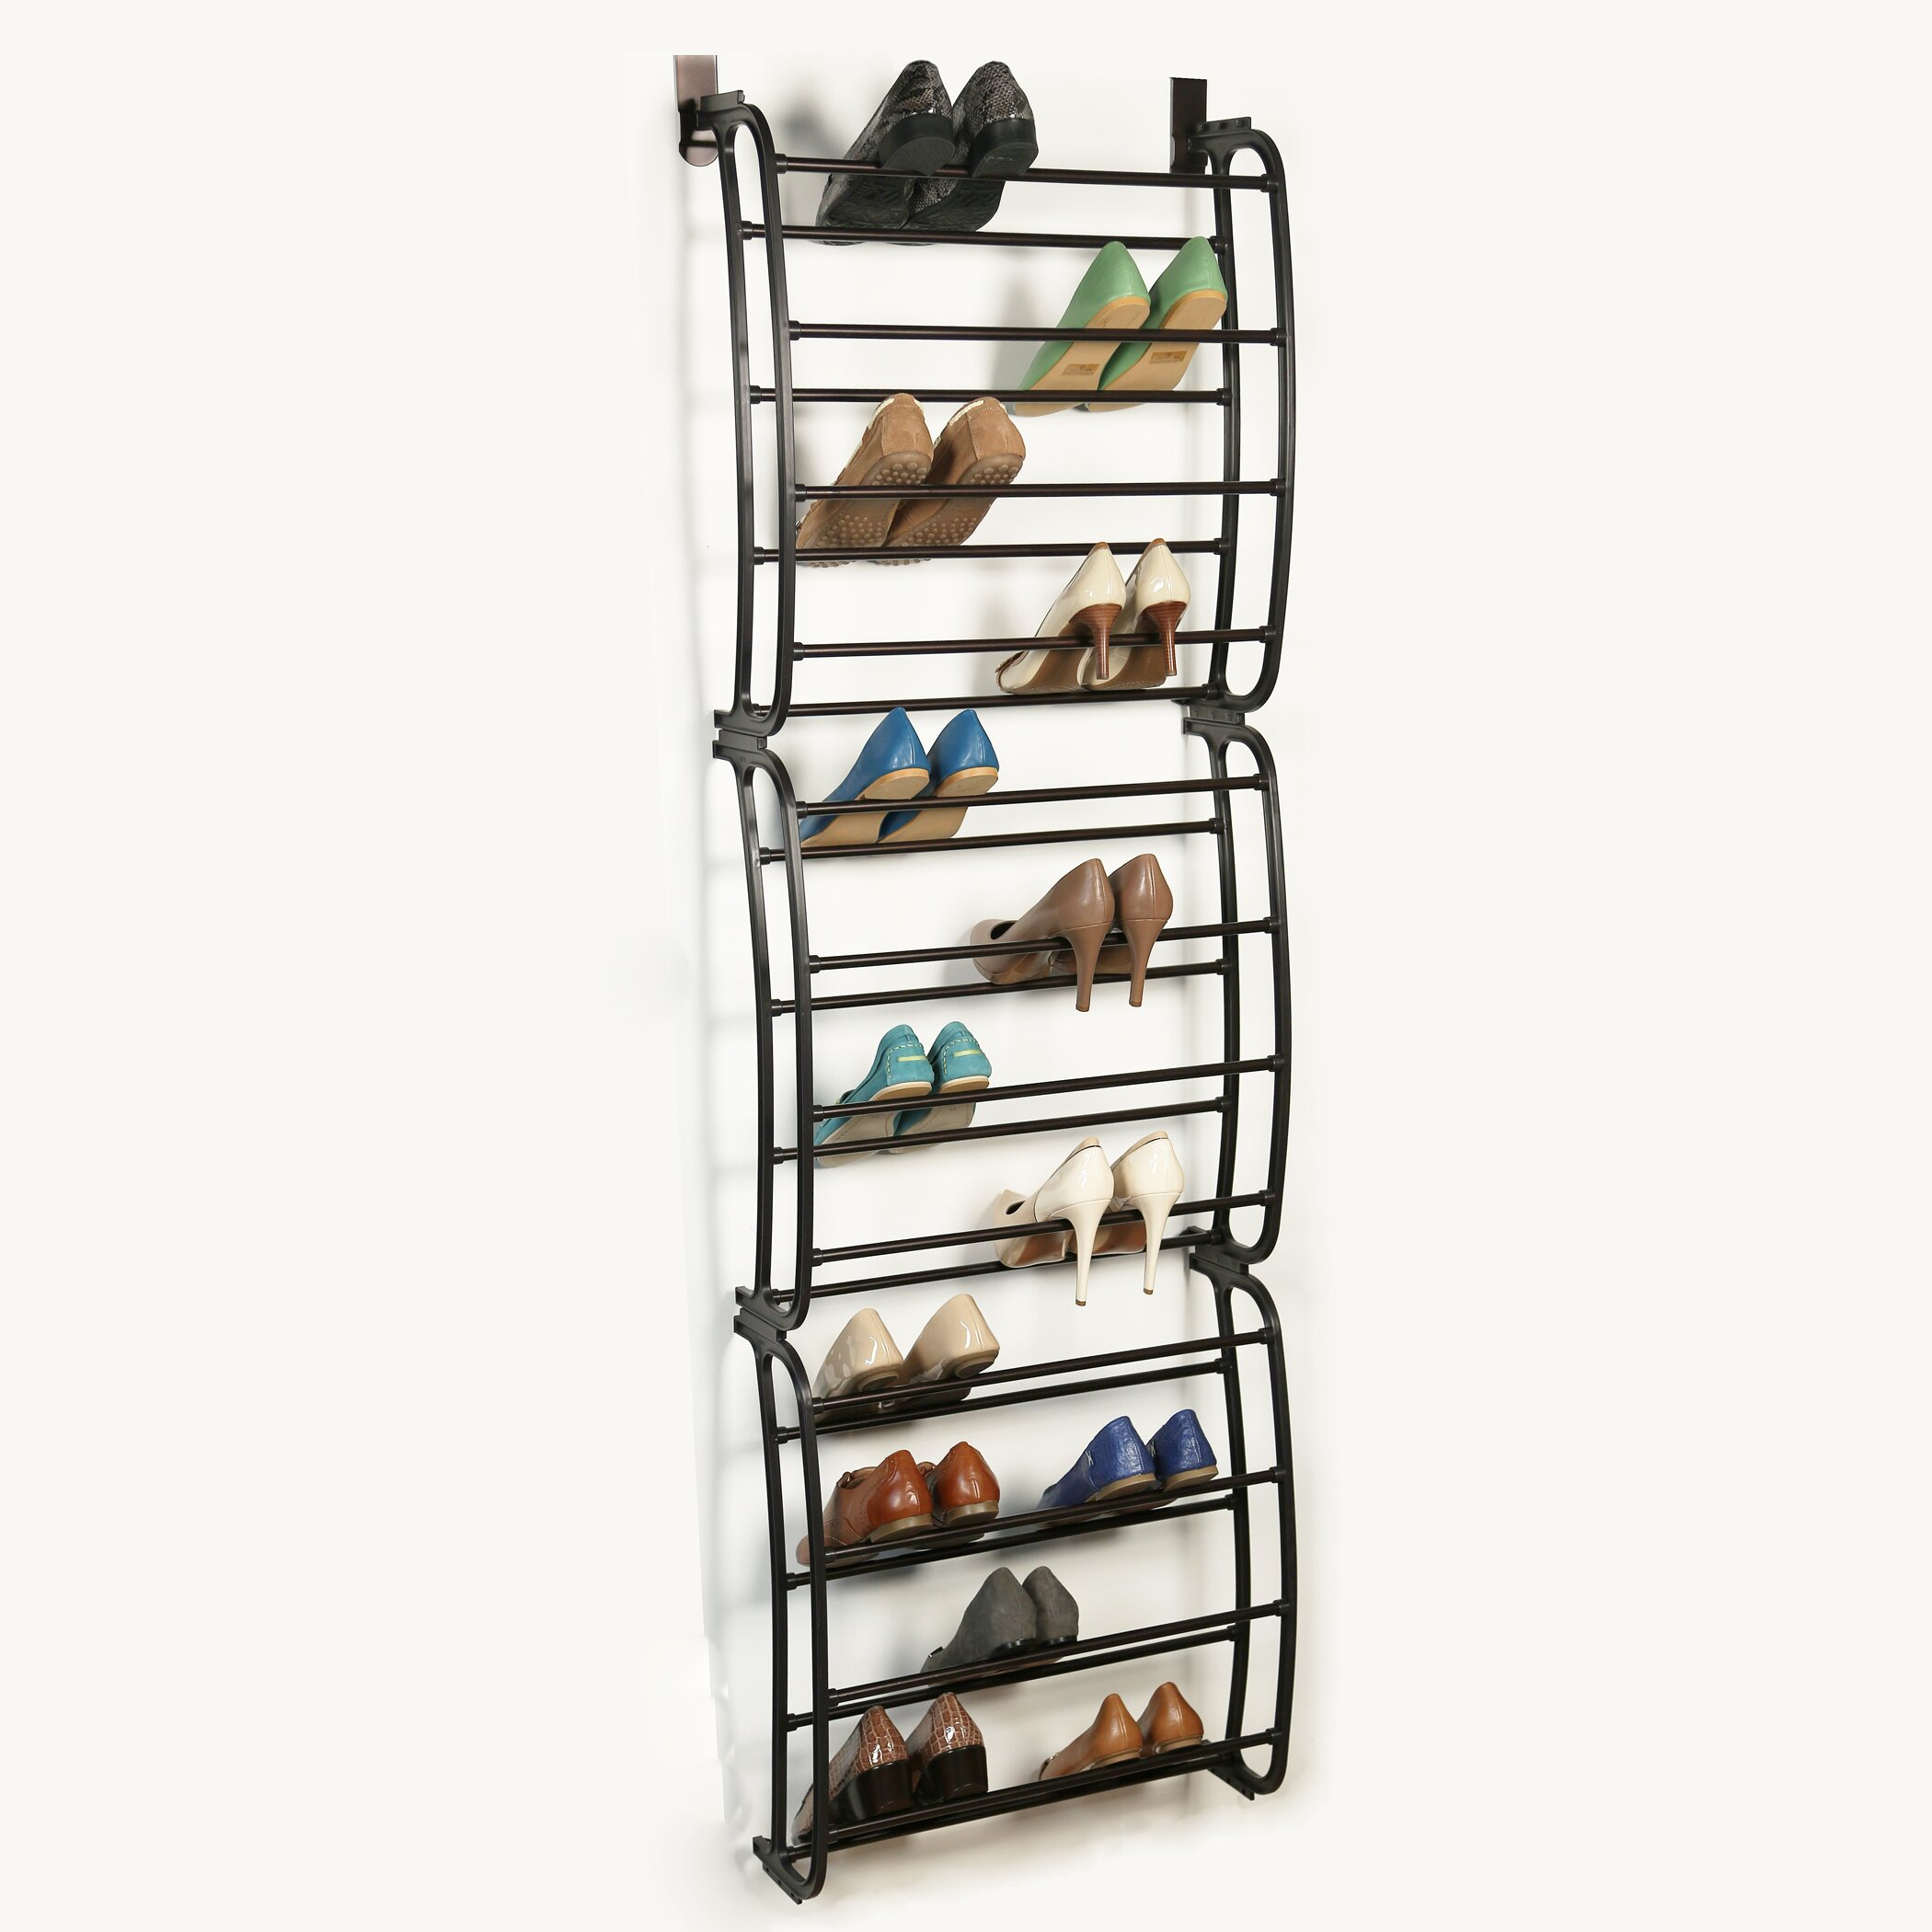 richards homewares 12 tier overdoor shoe organizer reviews wayfair. Black Bedroom Furniture Sets. Home Design Ideas